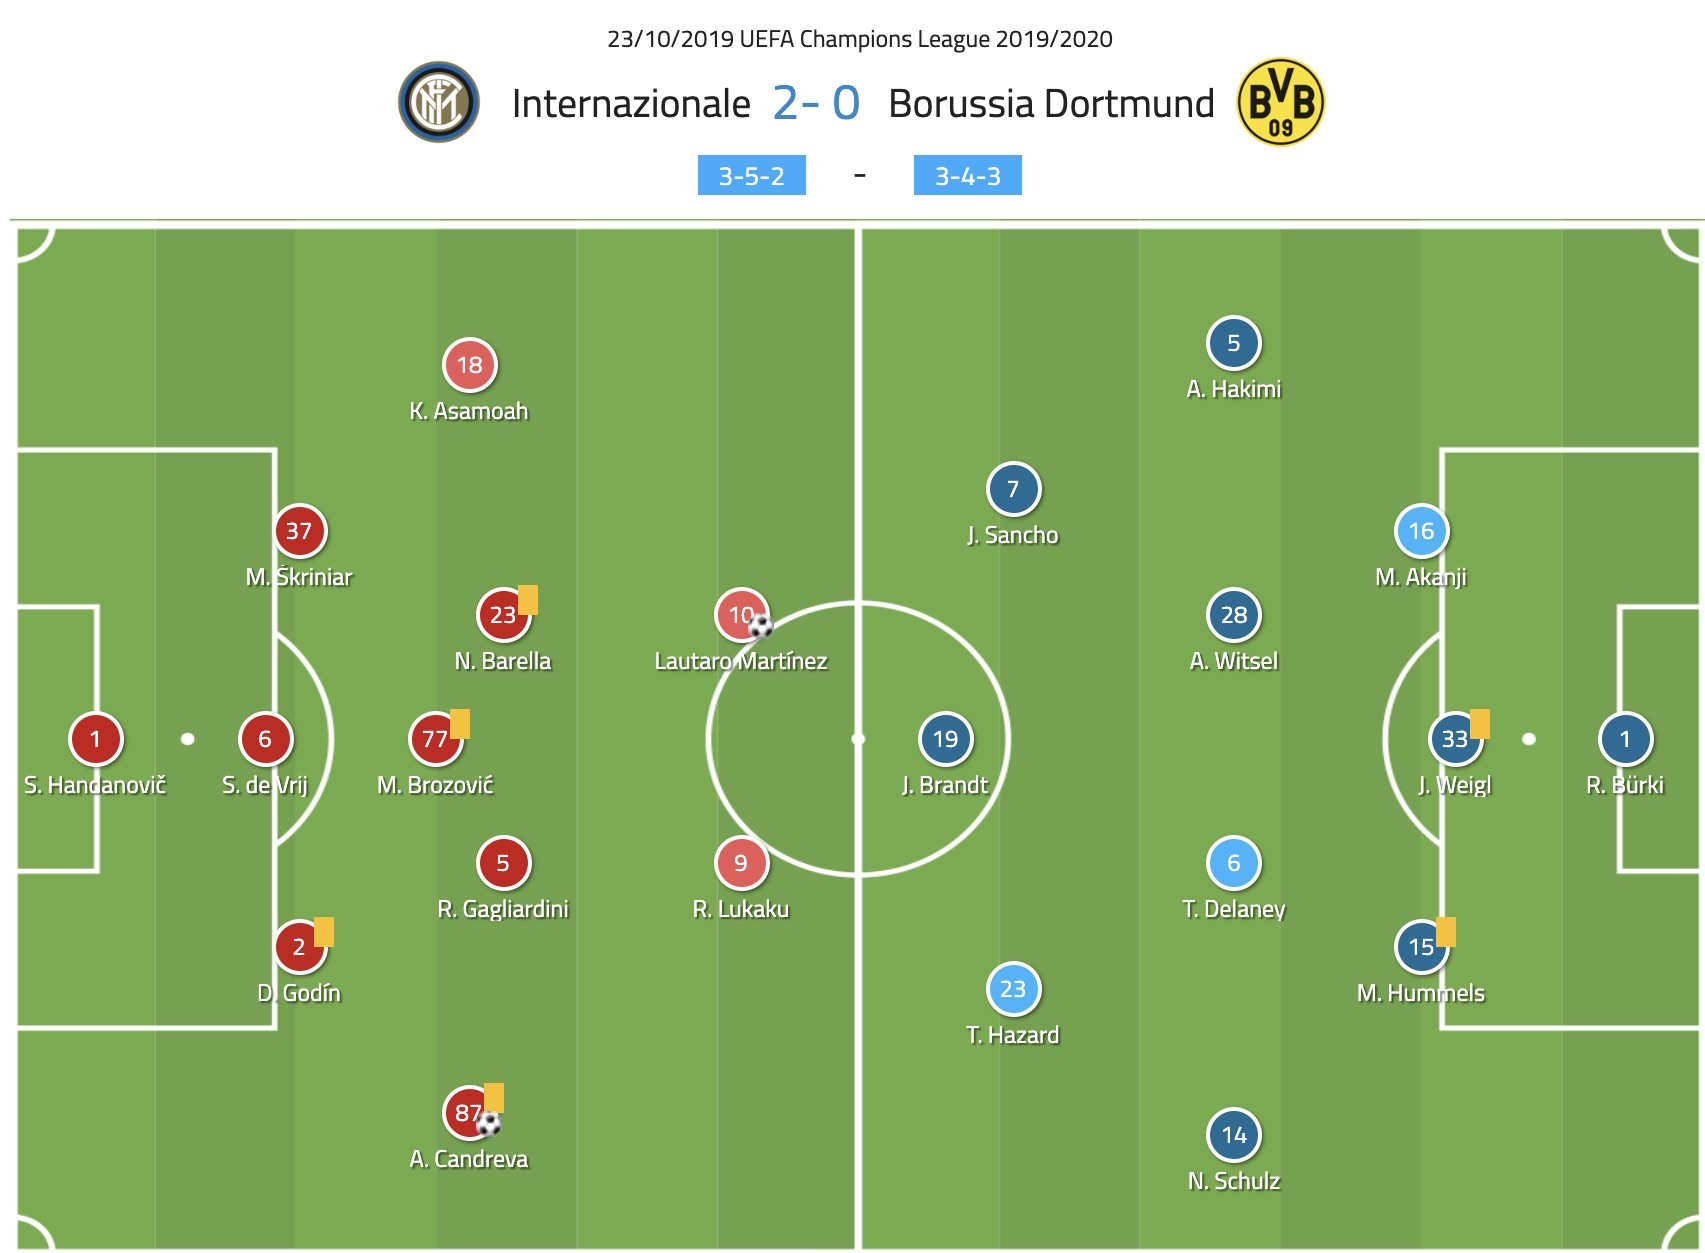 UEFA Champions League 2019/20: Inter Milan vs Dortmund - tactical analysis tactics